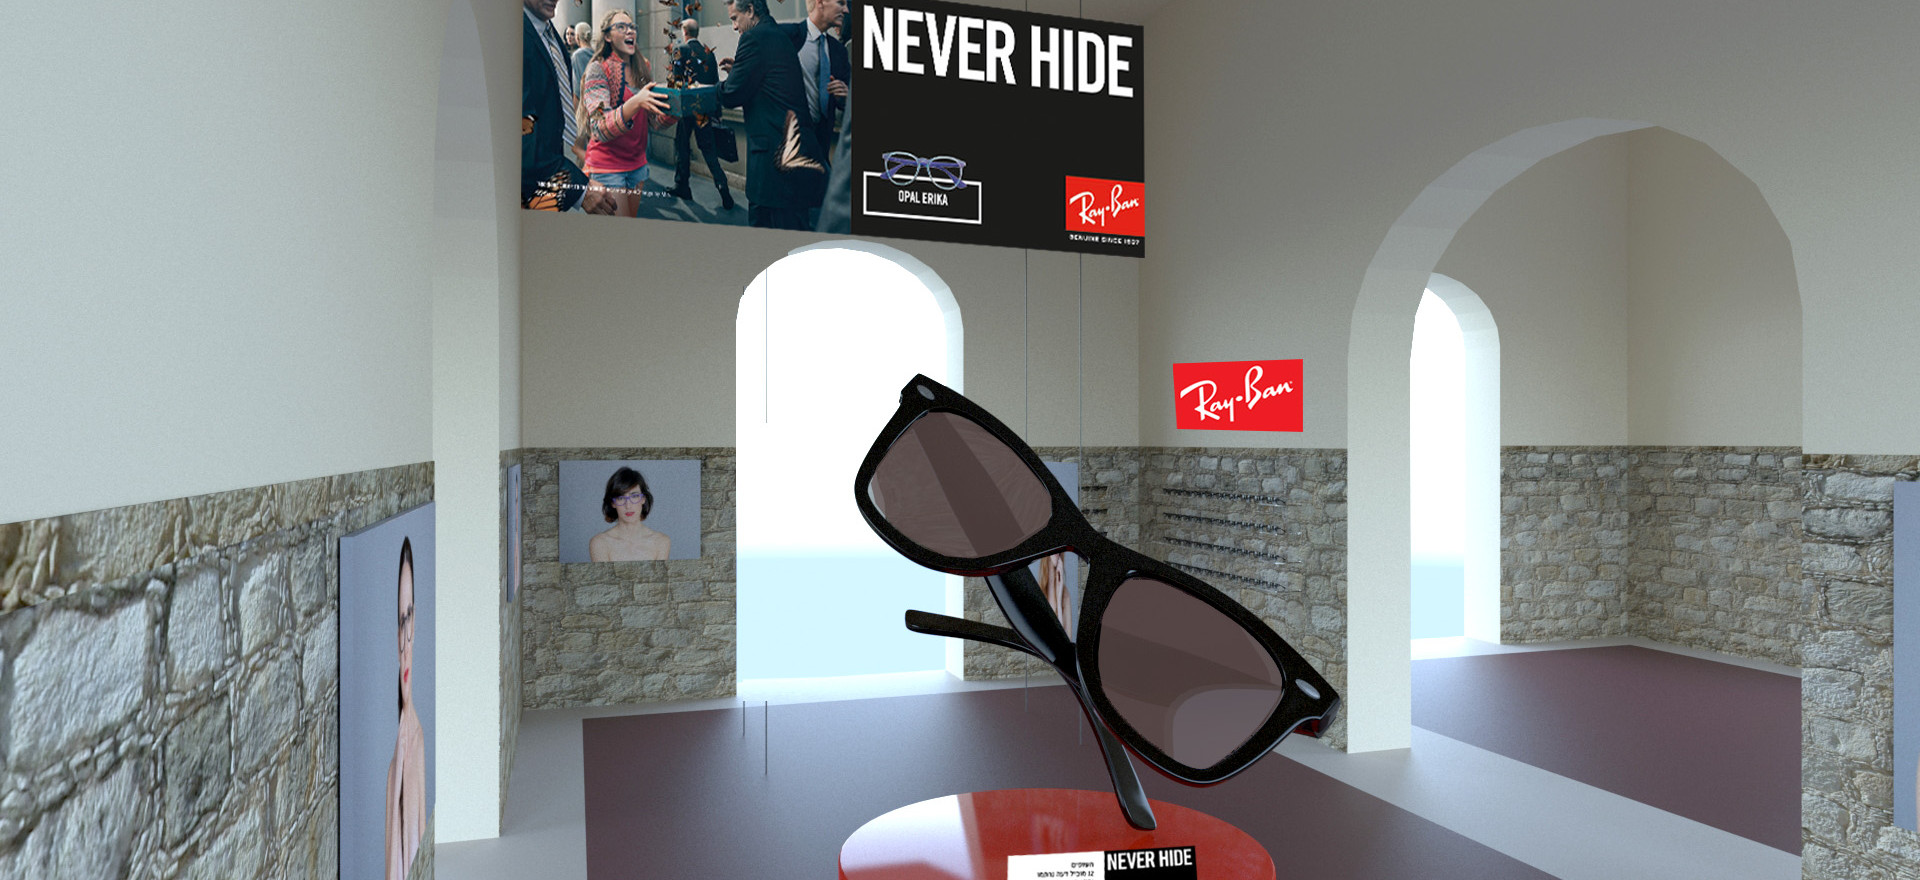 Ray Ban Donation Event